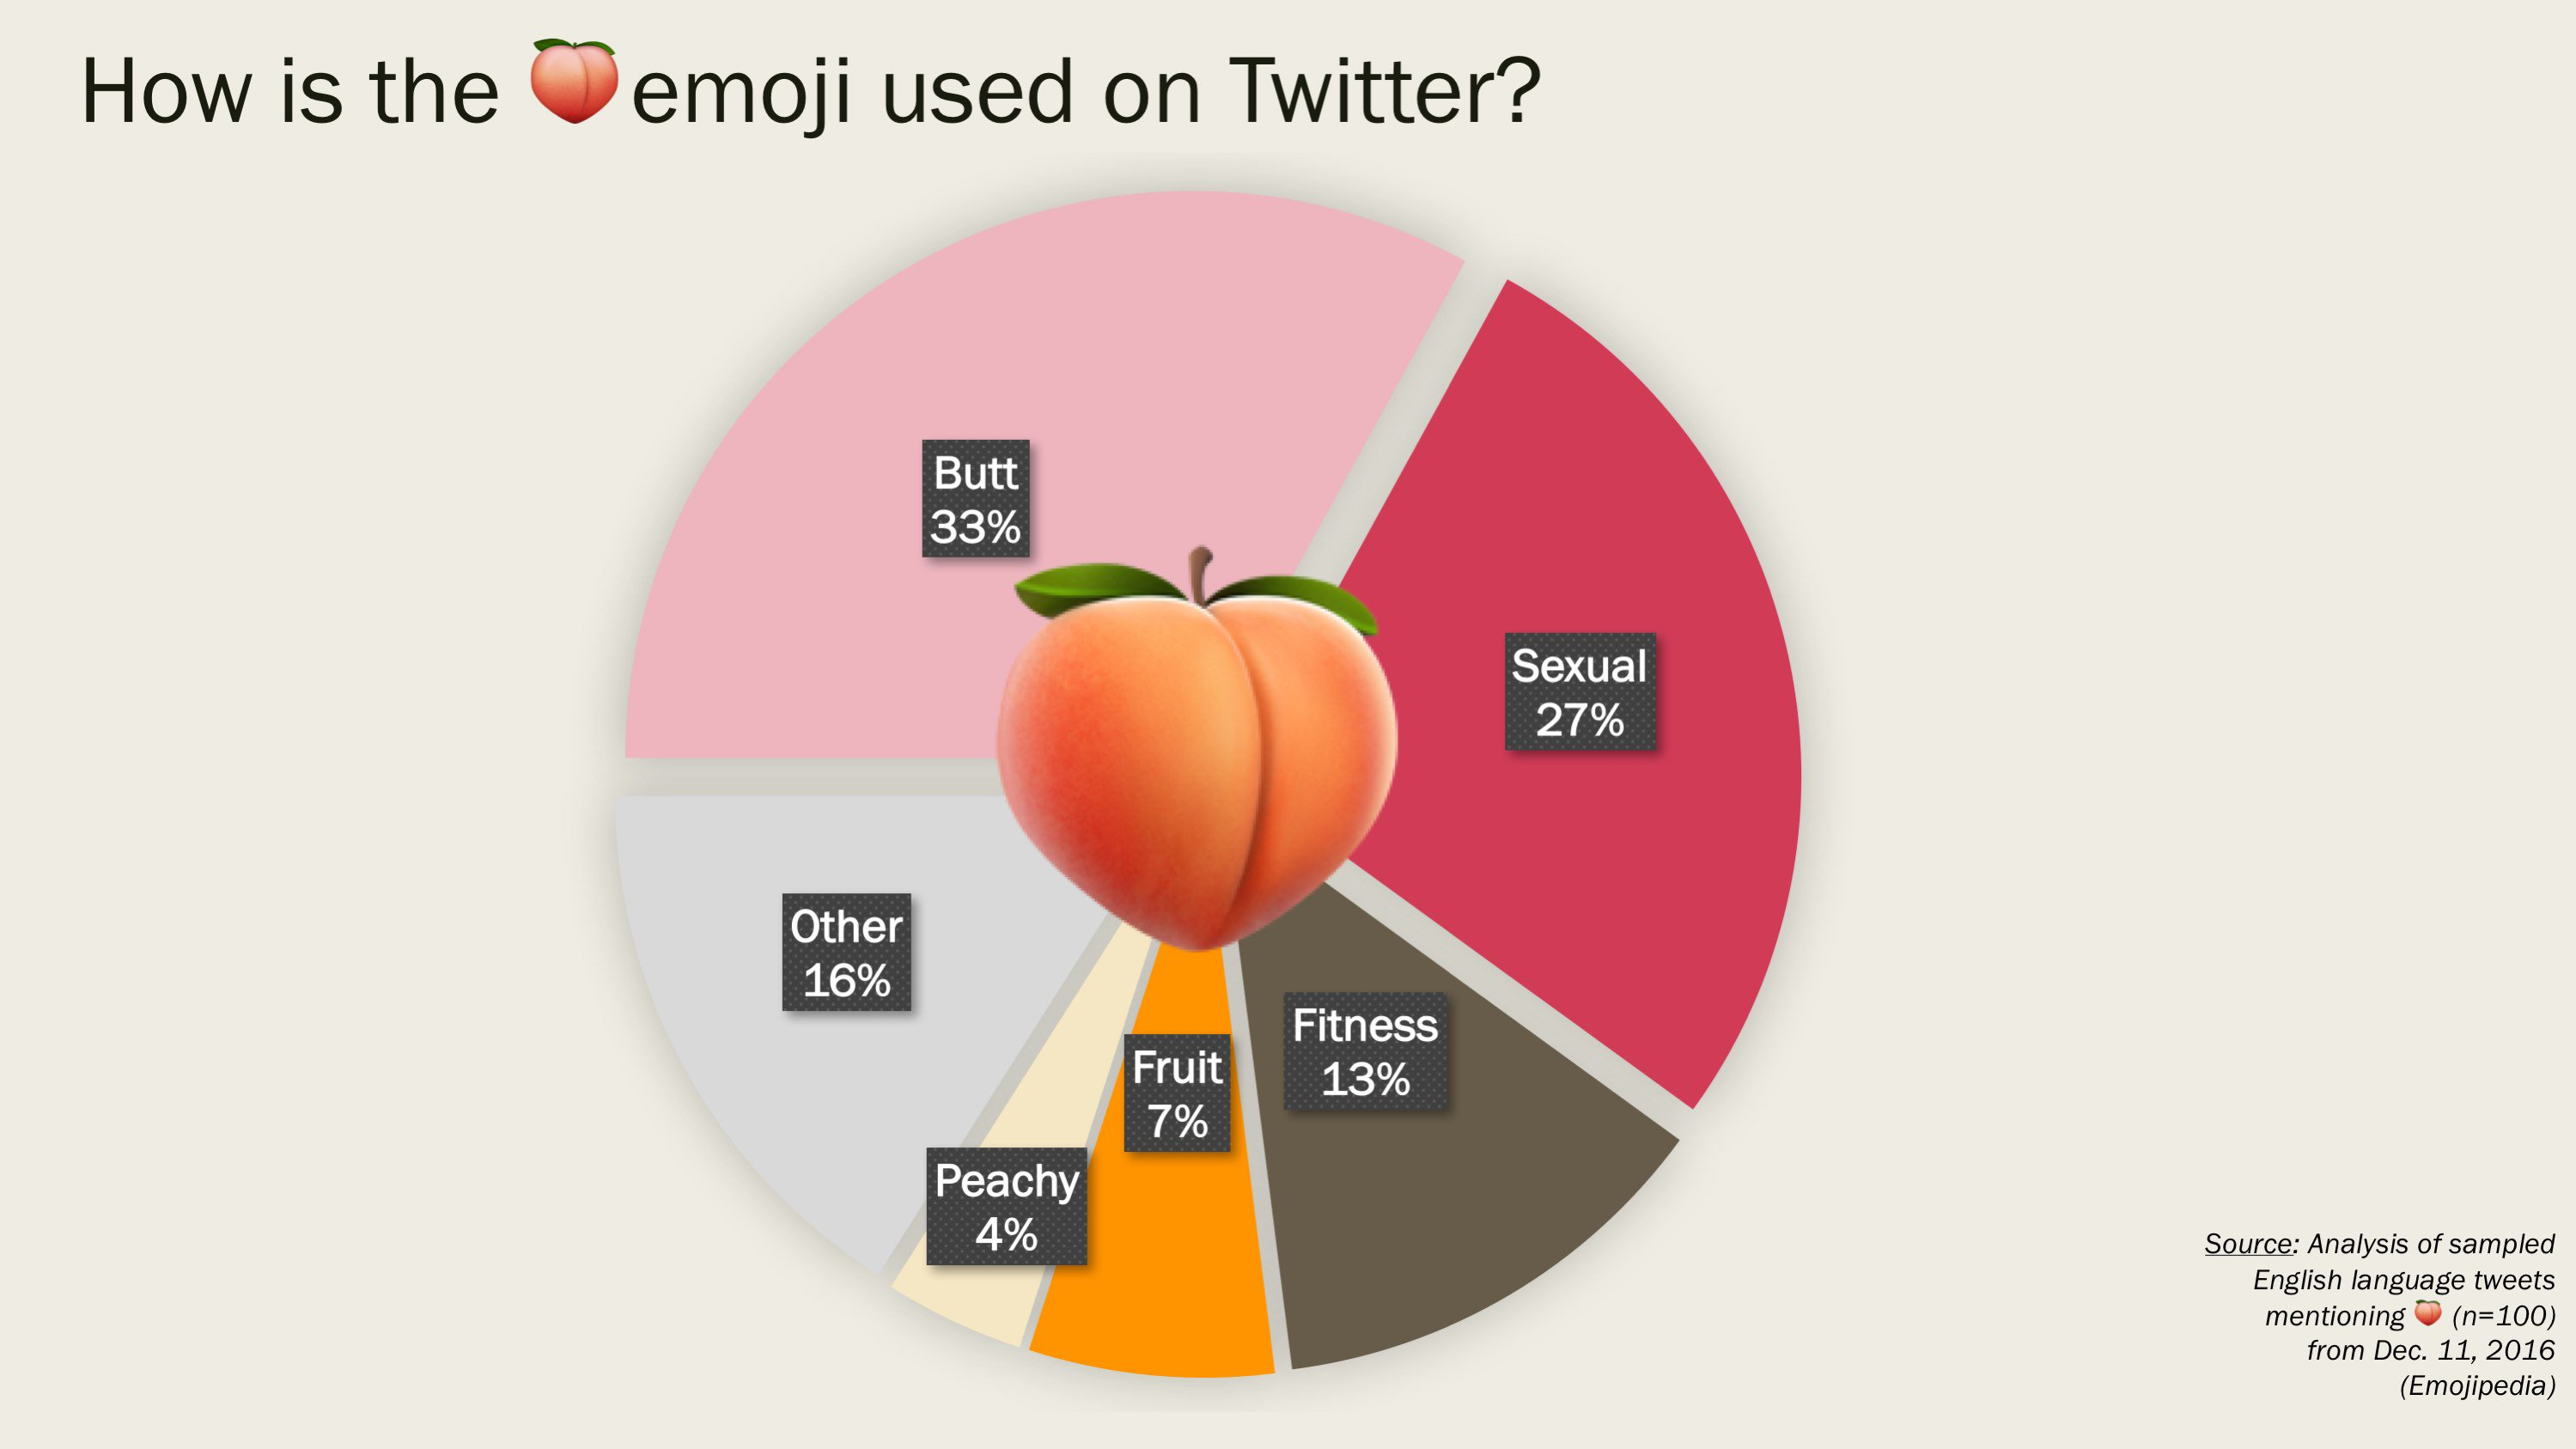 peach-emoji-usage-twitter-emojipedia-1